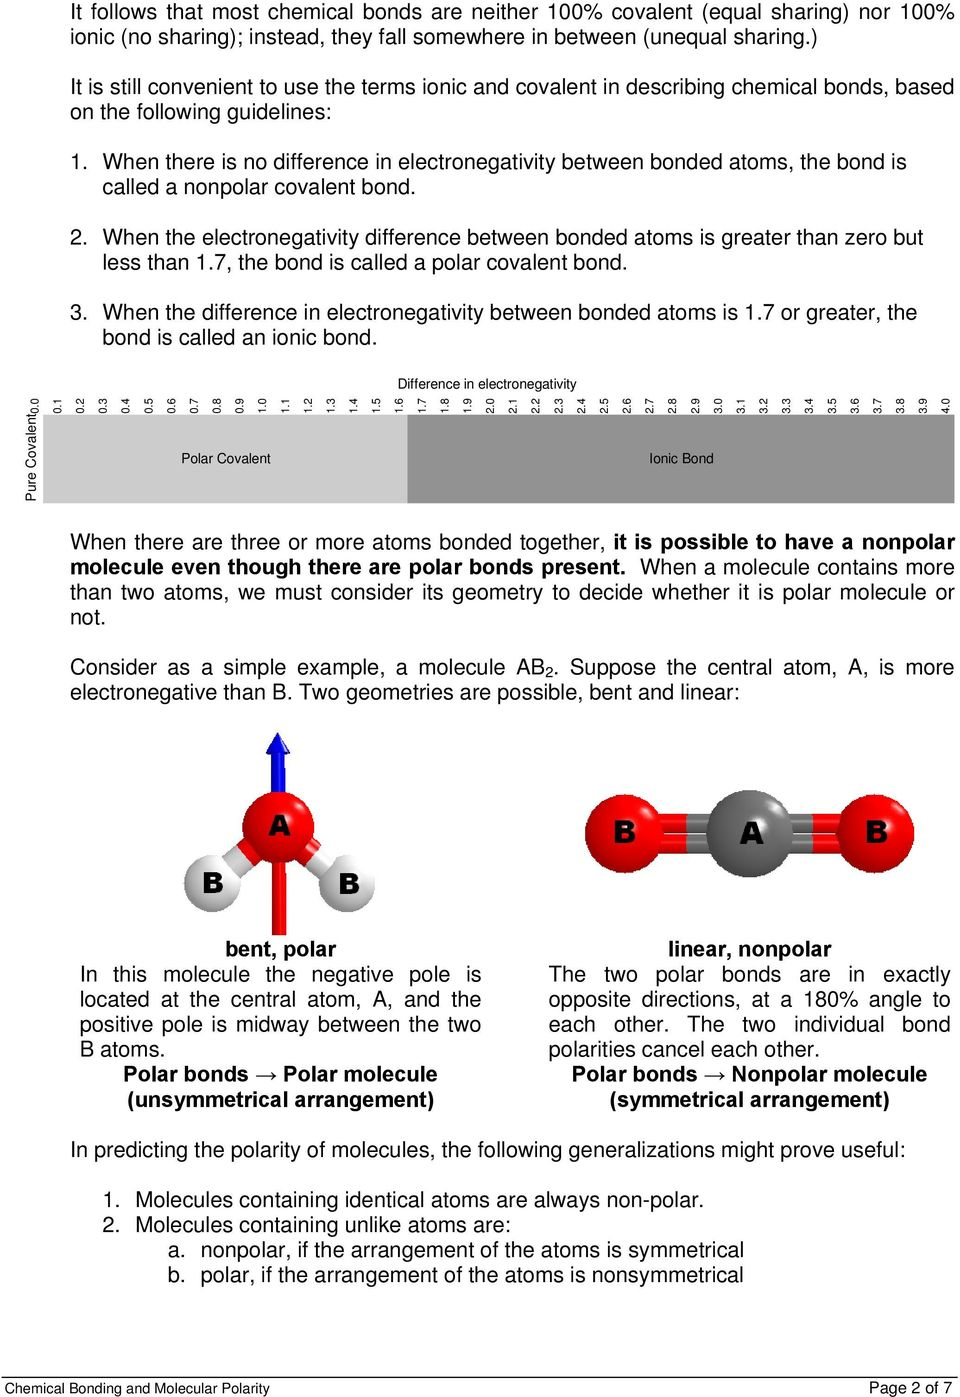 worksheet Bonding And Molecular Structure Worksheet experiment 17 chemical bonding and molecular polarity pdf when there is no difference in electronegativity between bonded atoms the bond called a